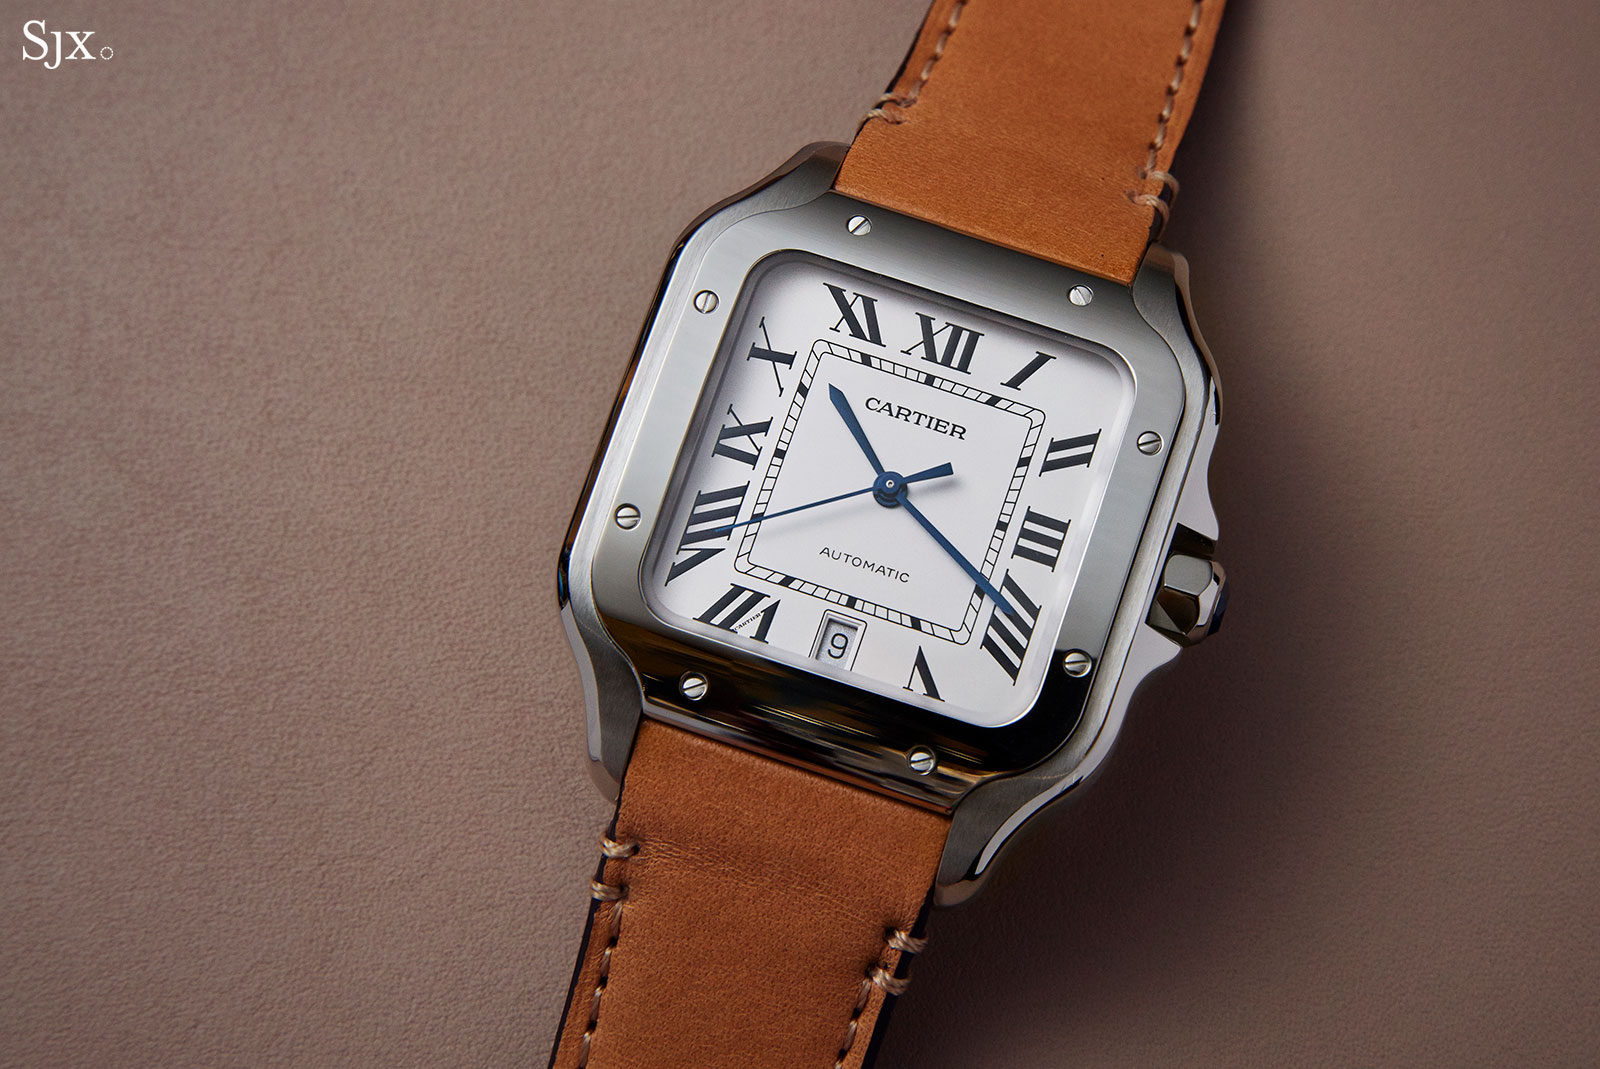 Cartier Santos watch 2018 steel